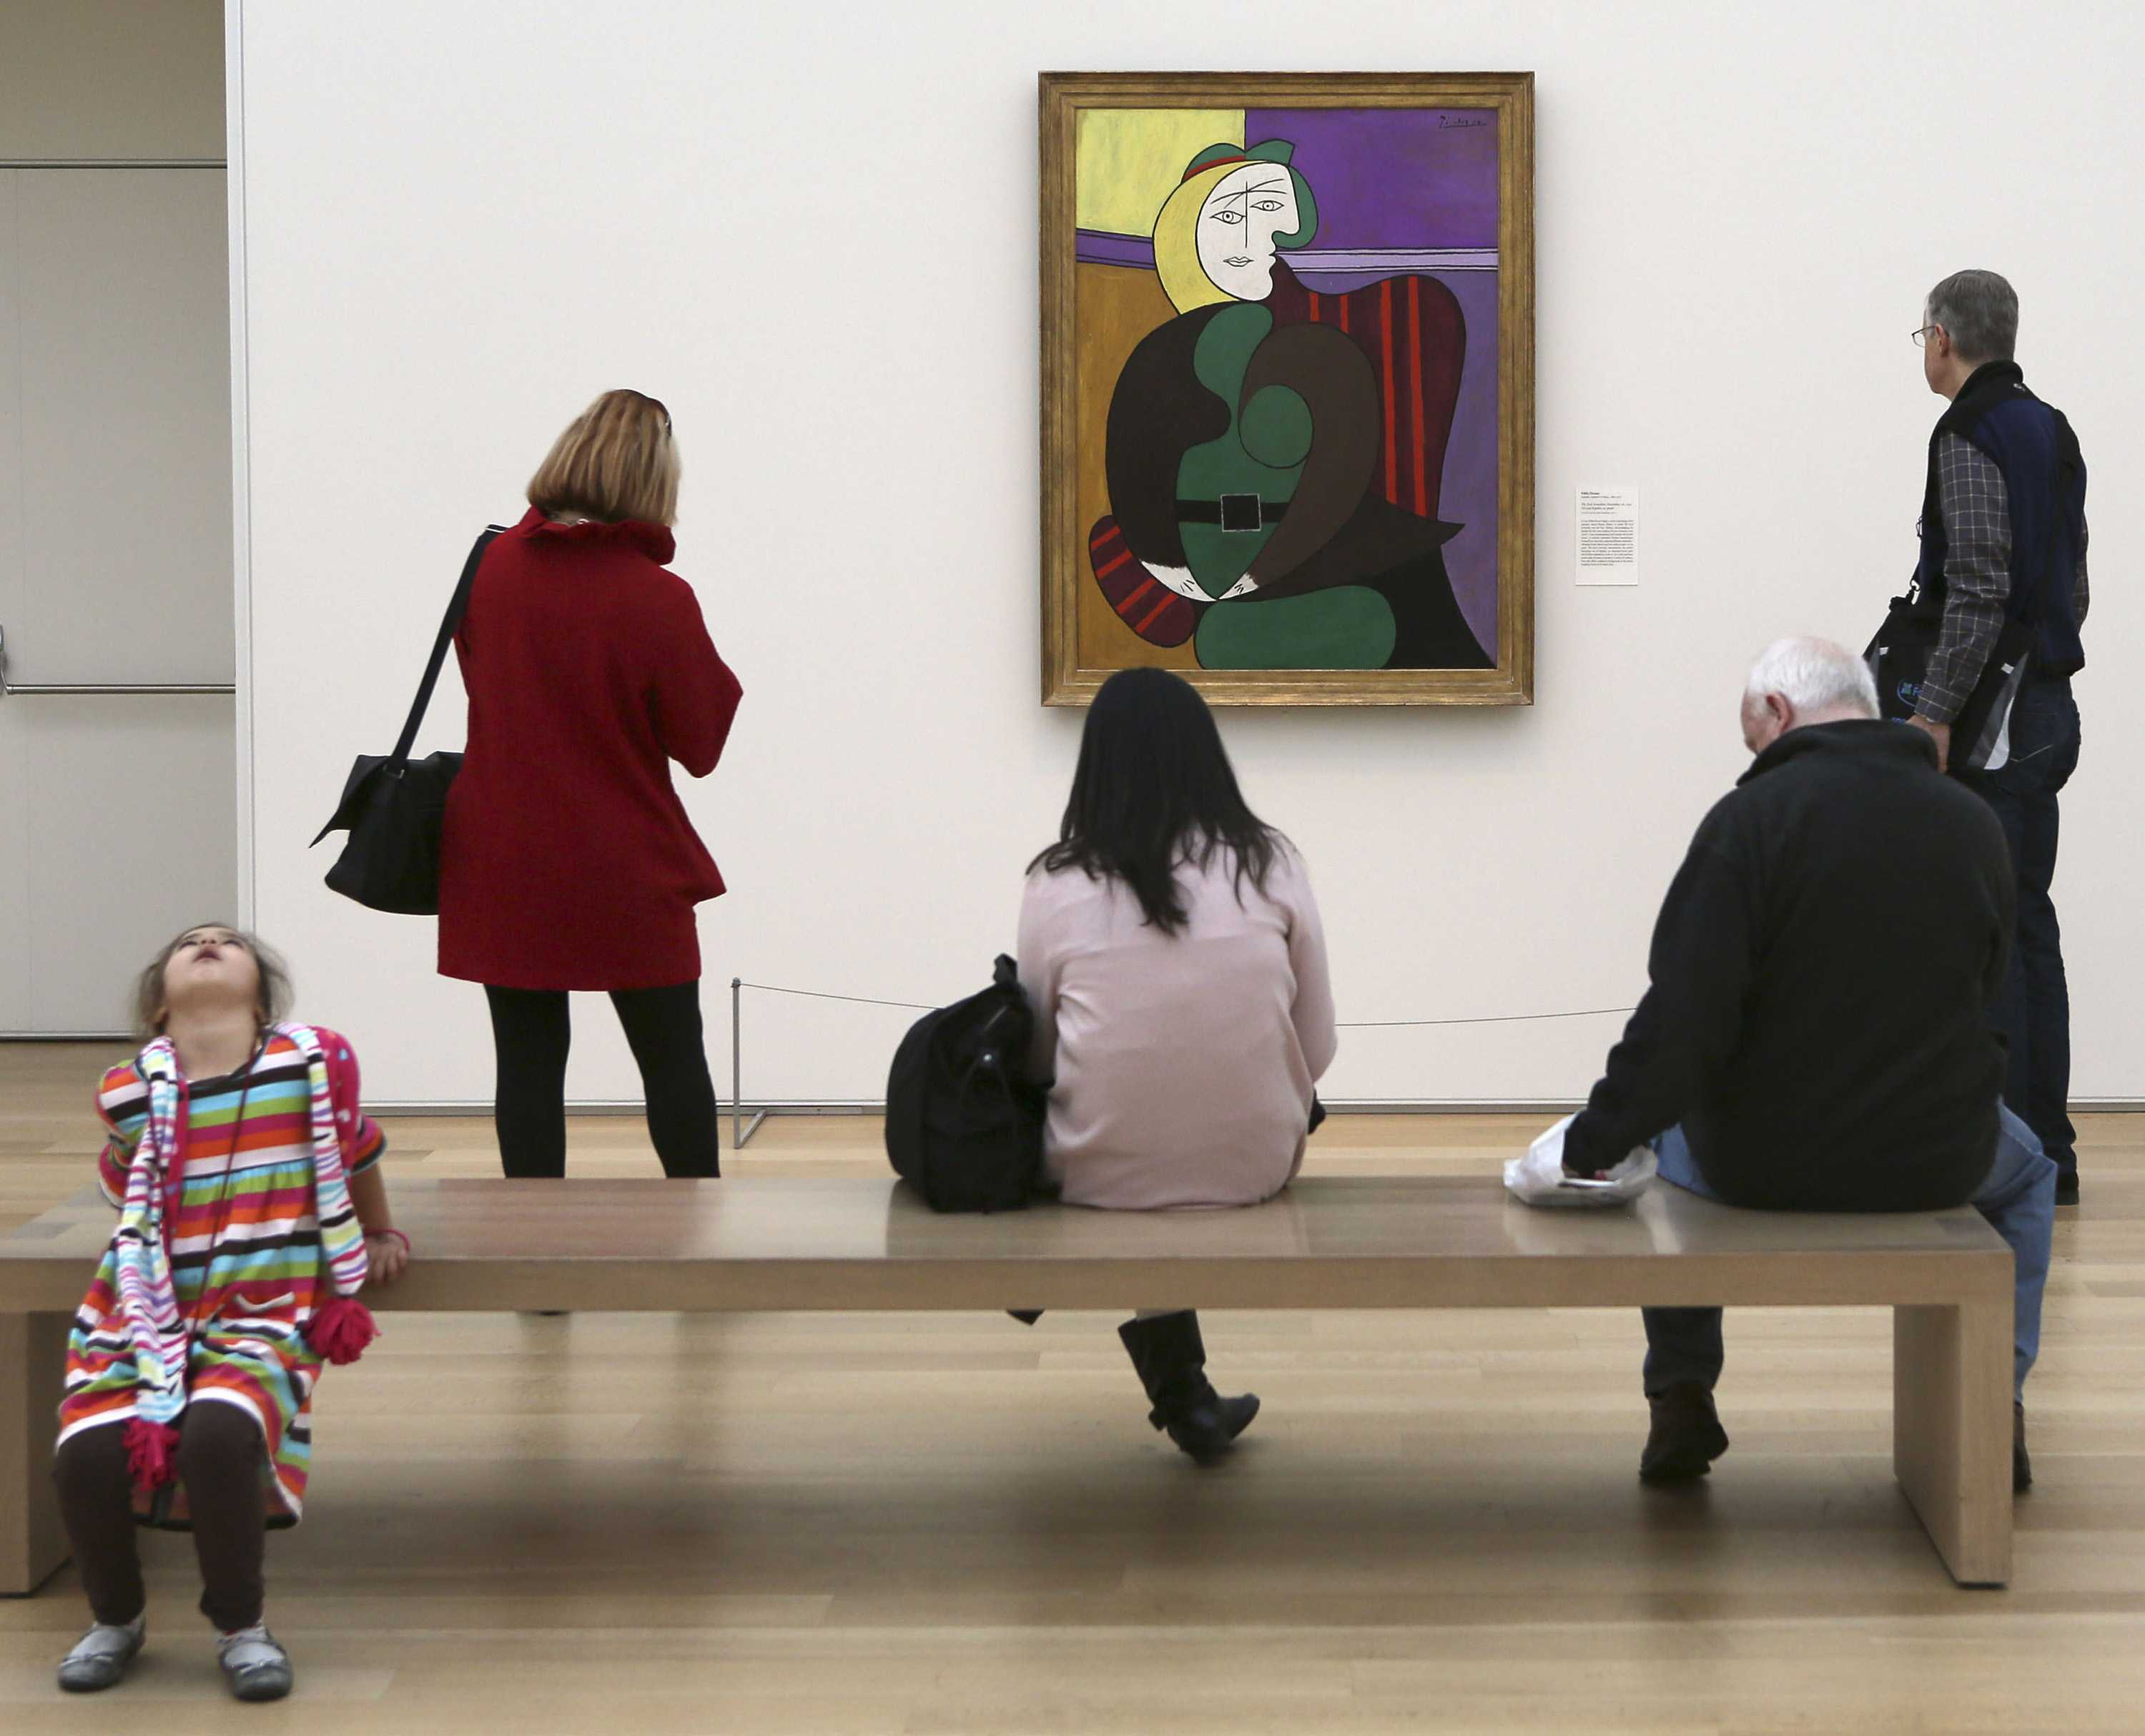 Visitors view Picasso's